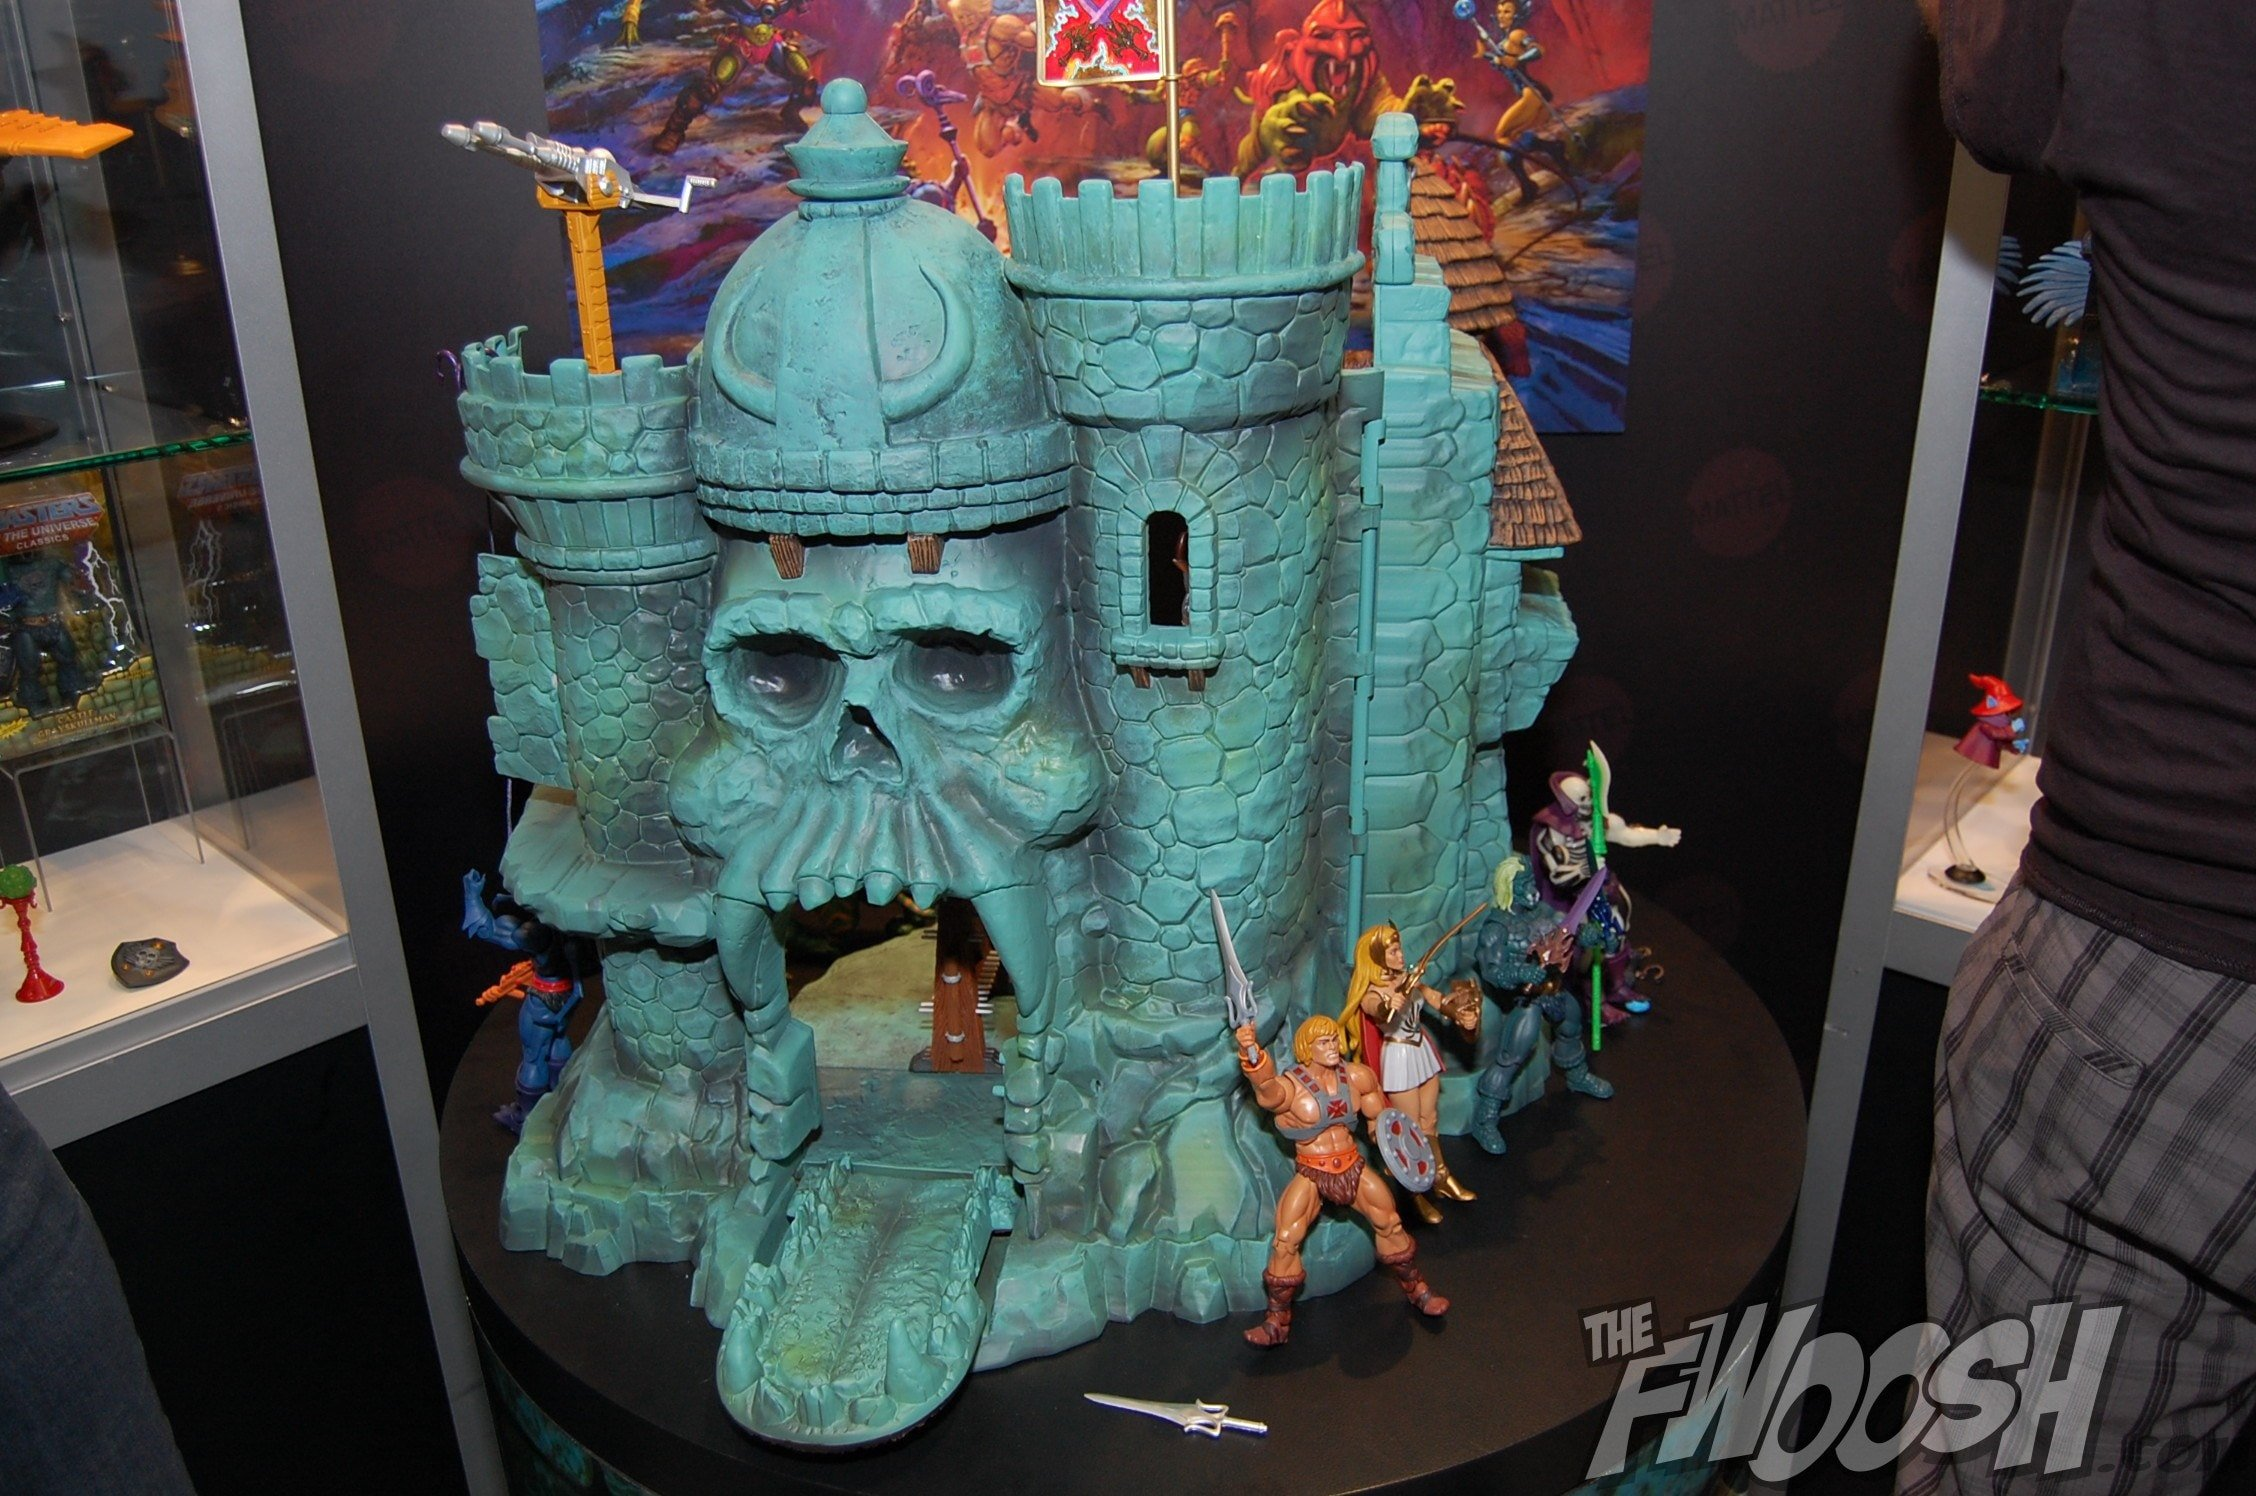 Castle Grayskull from He-Man